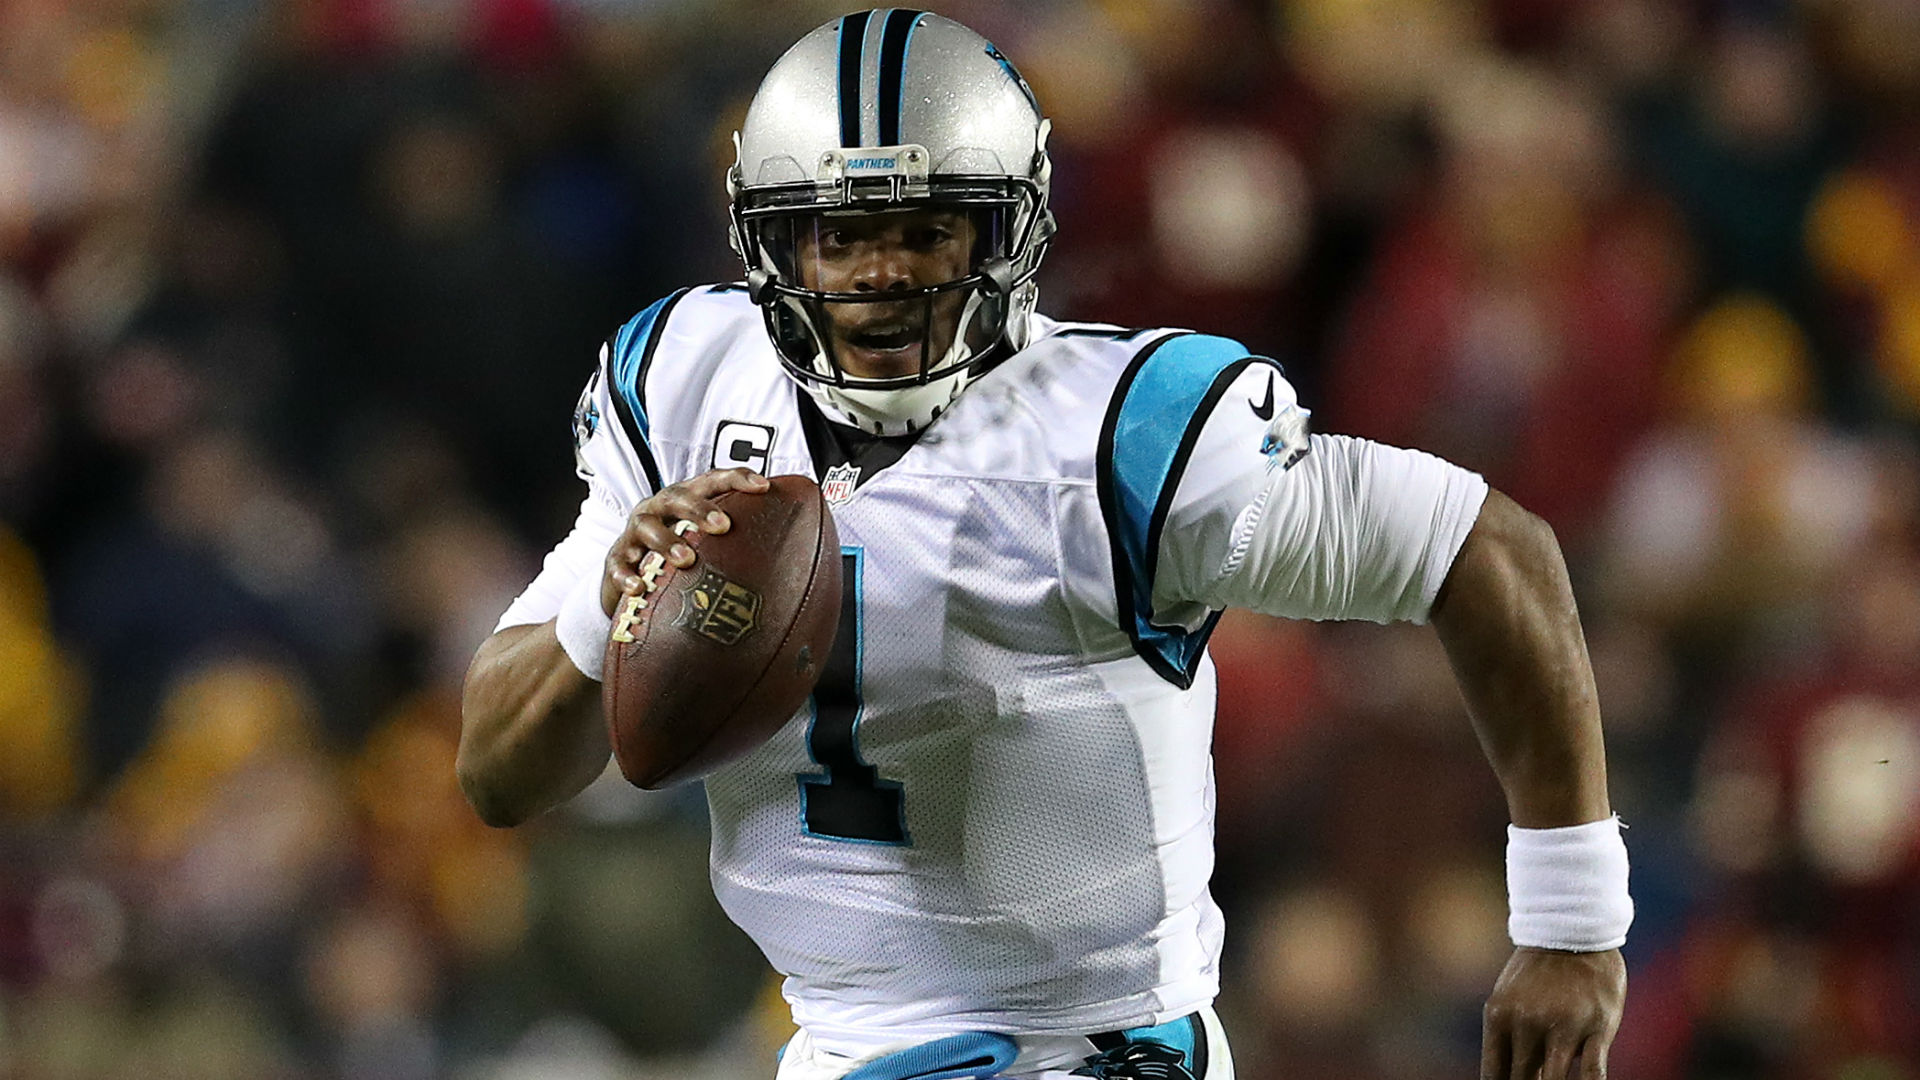 Carolina Panthers announce Cam Newton will not throw at minicamp